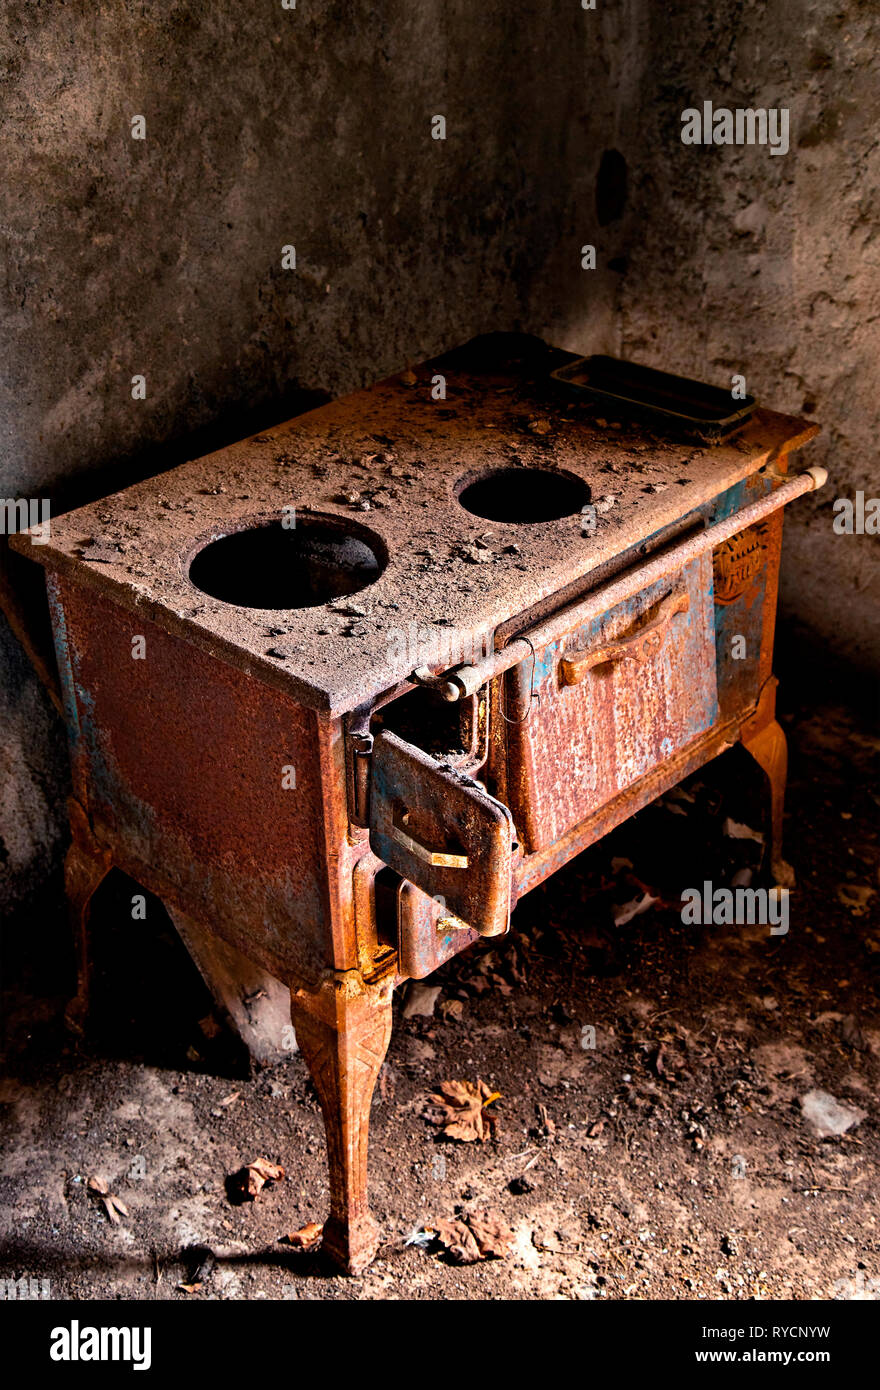 Old stove in an abandoned house in Kalami, a 'ghost village' in Viannos county, Crete, Greece. - Stock Image